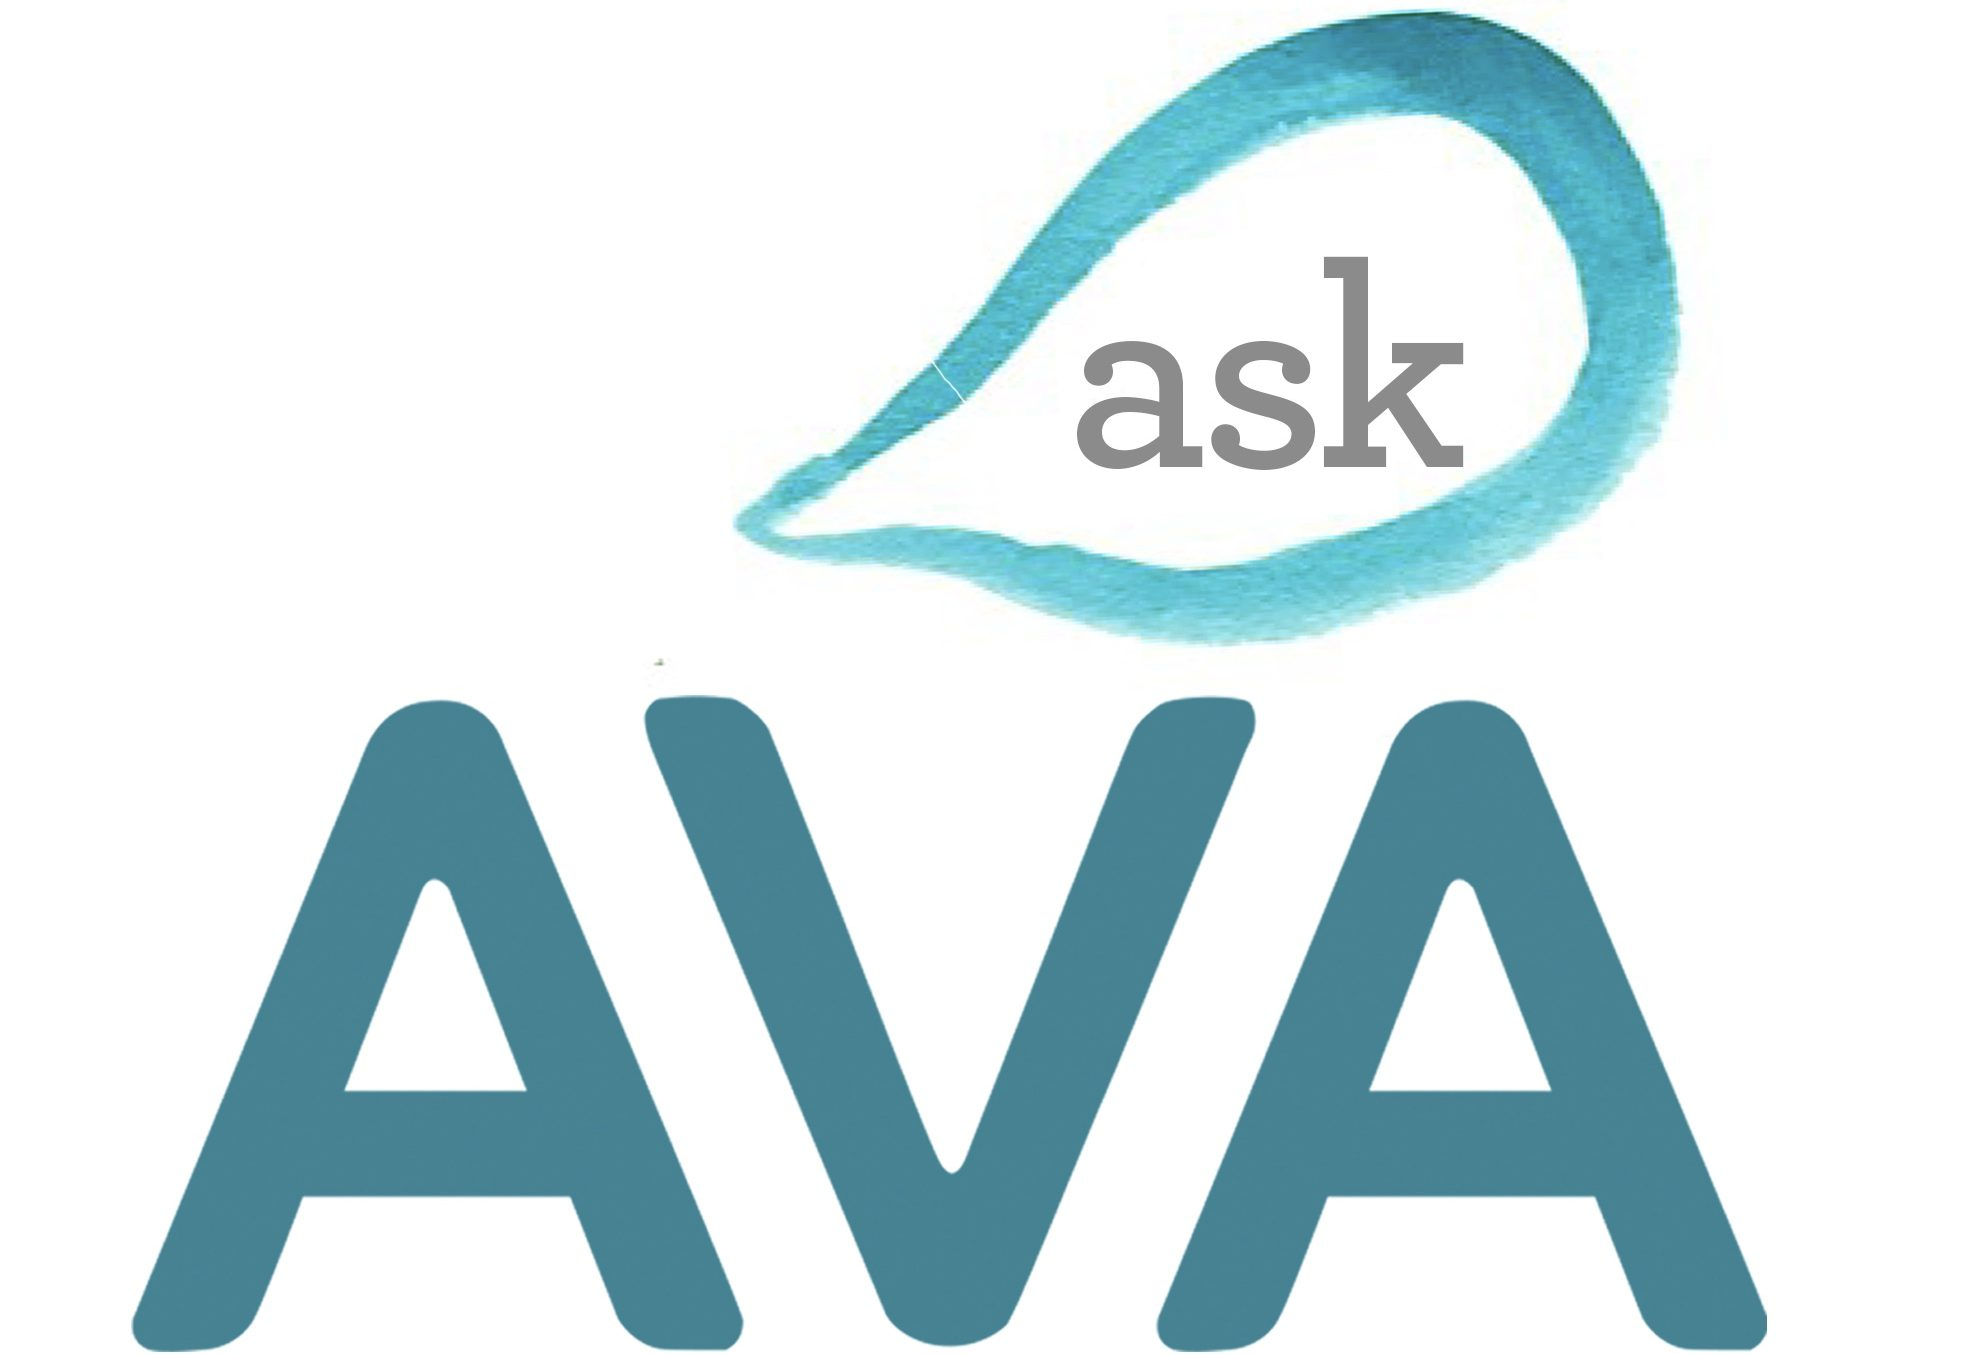 Logo for ask AVA